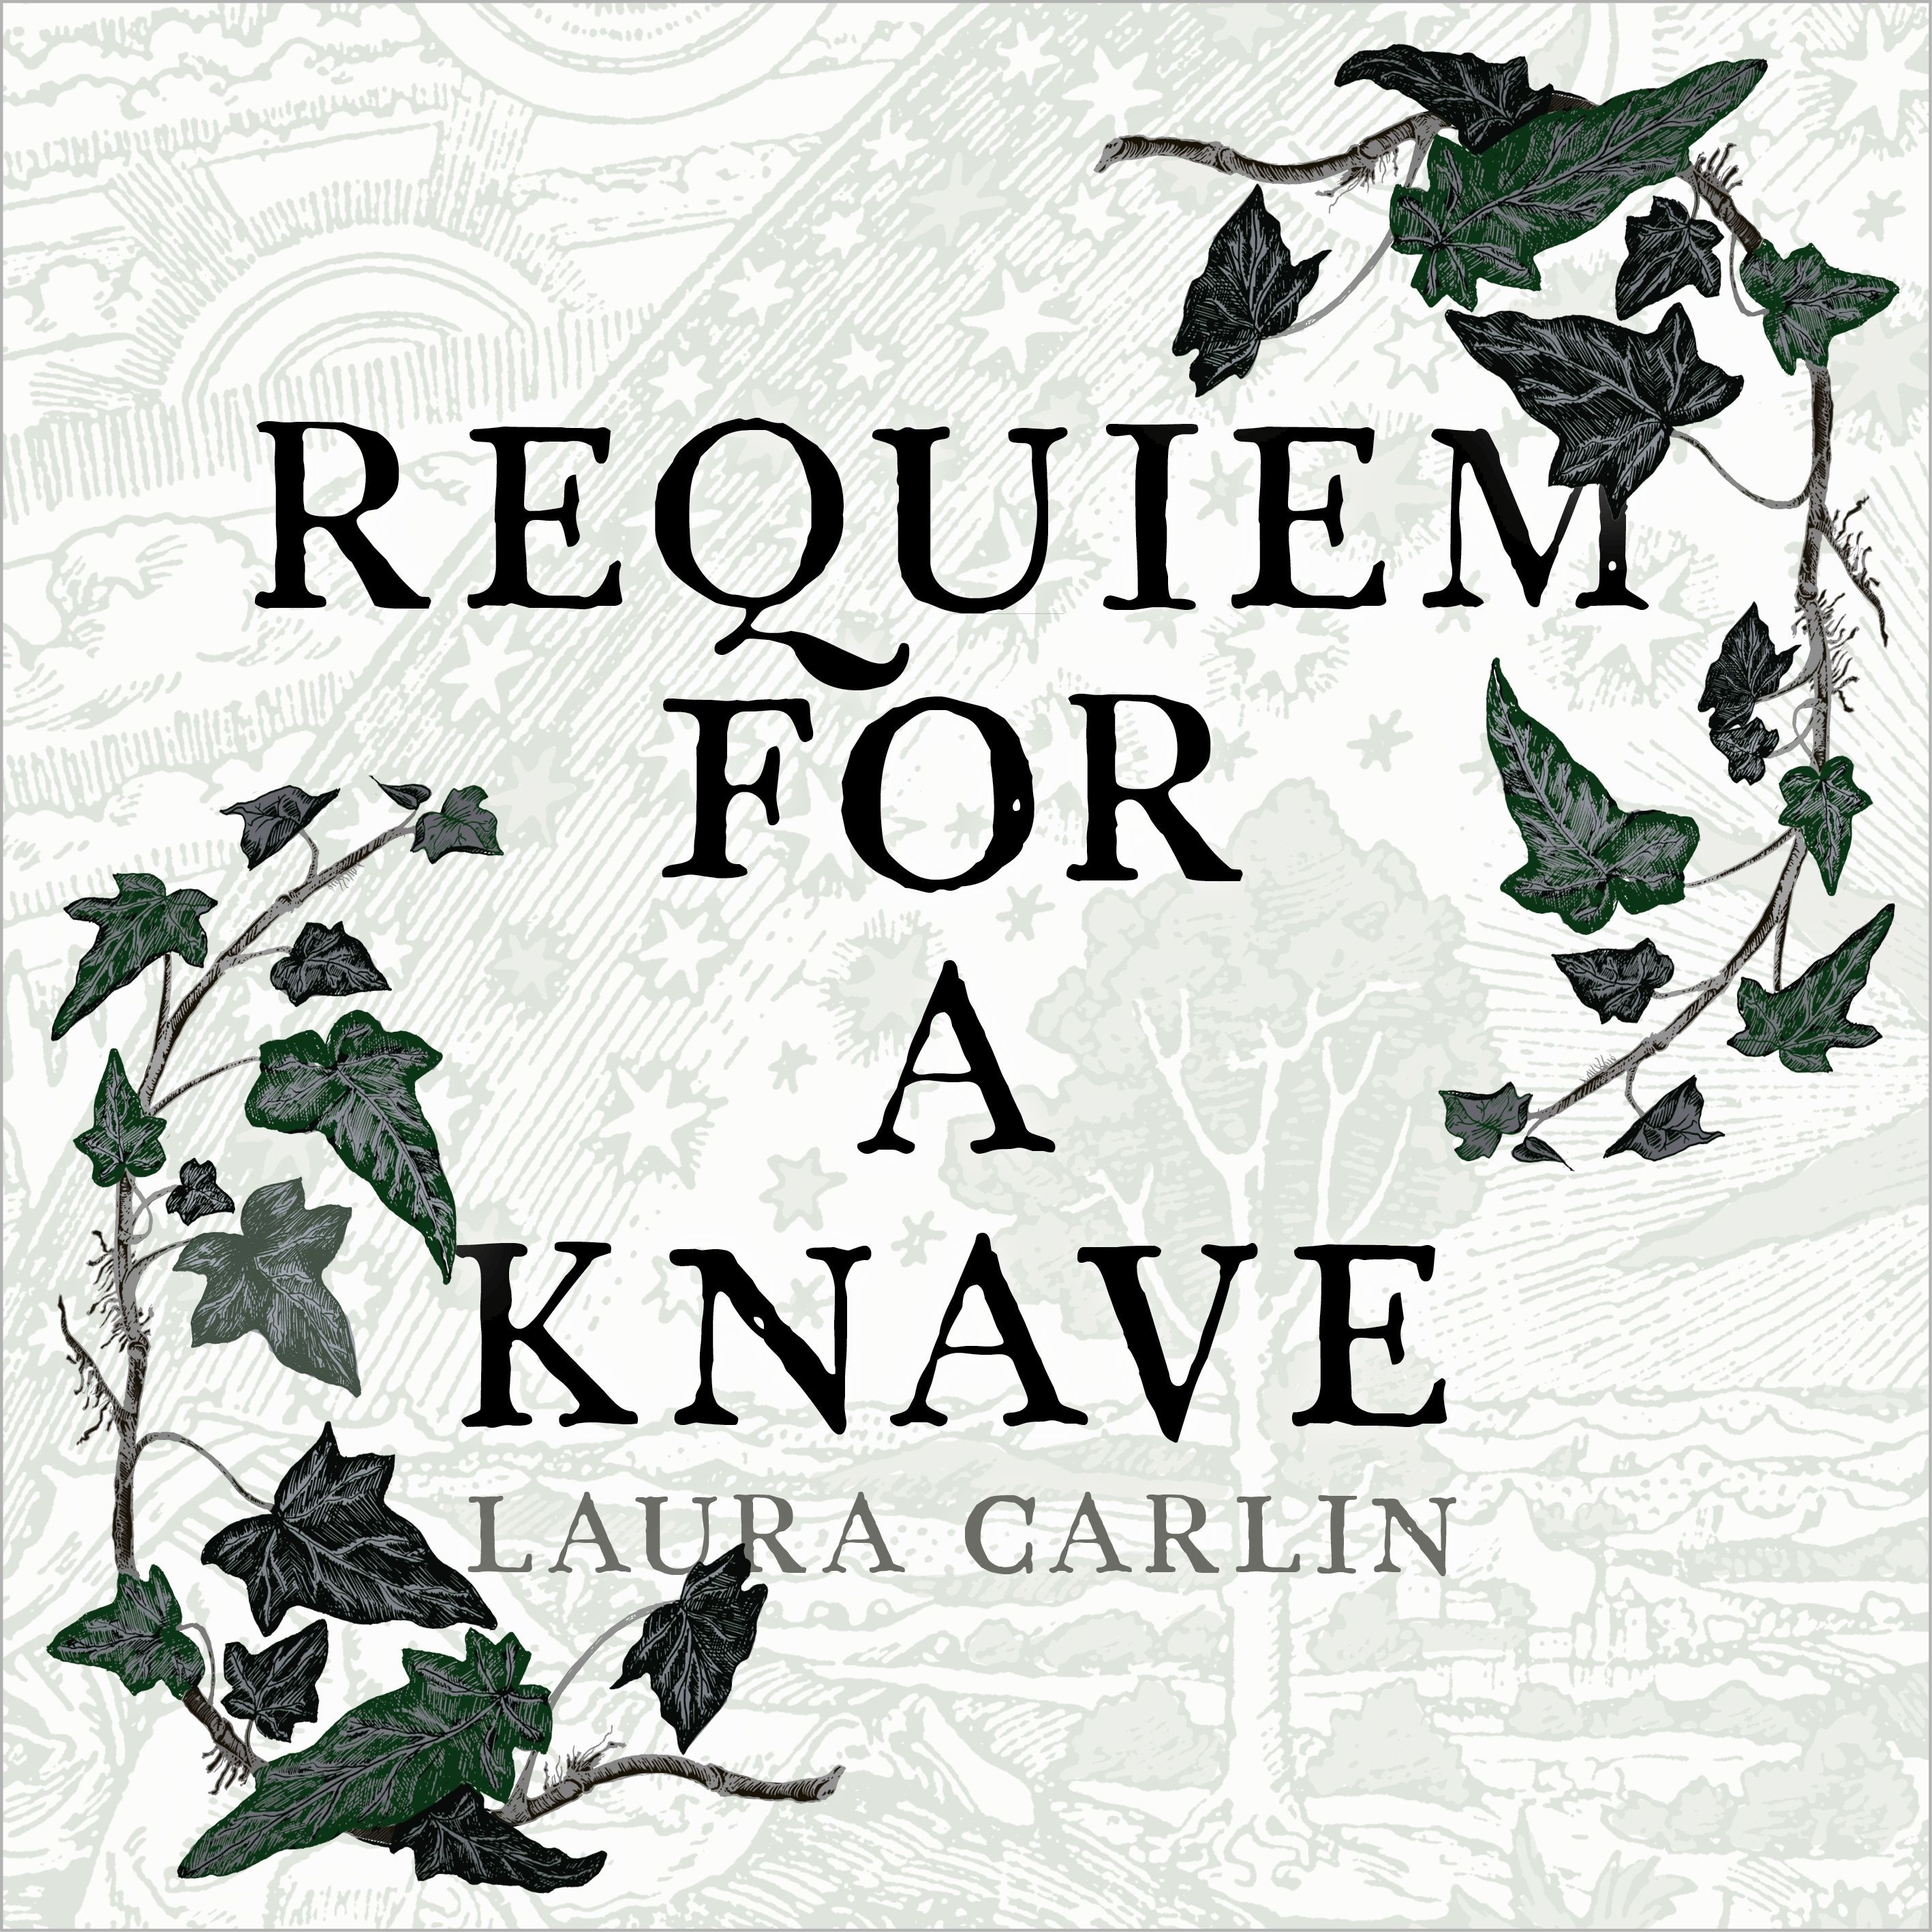 REQUIEM FOR A KNAVE by Laura Carlin, read by Joe Leat - Audiobook extract